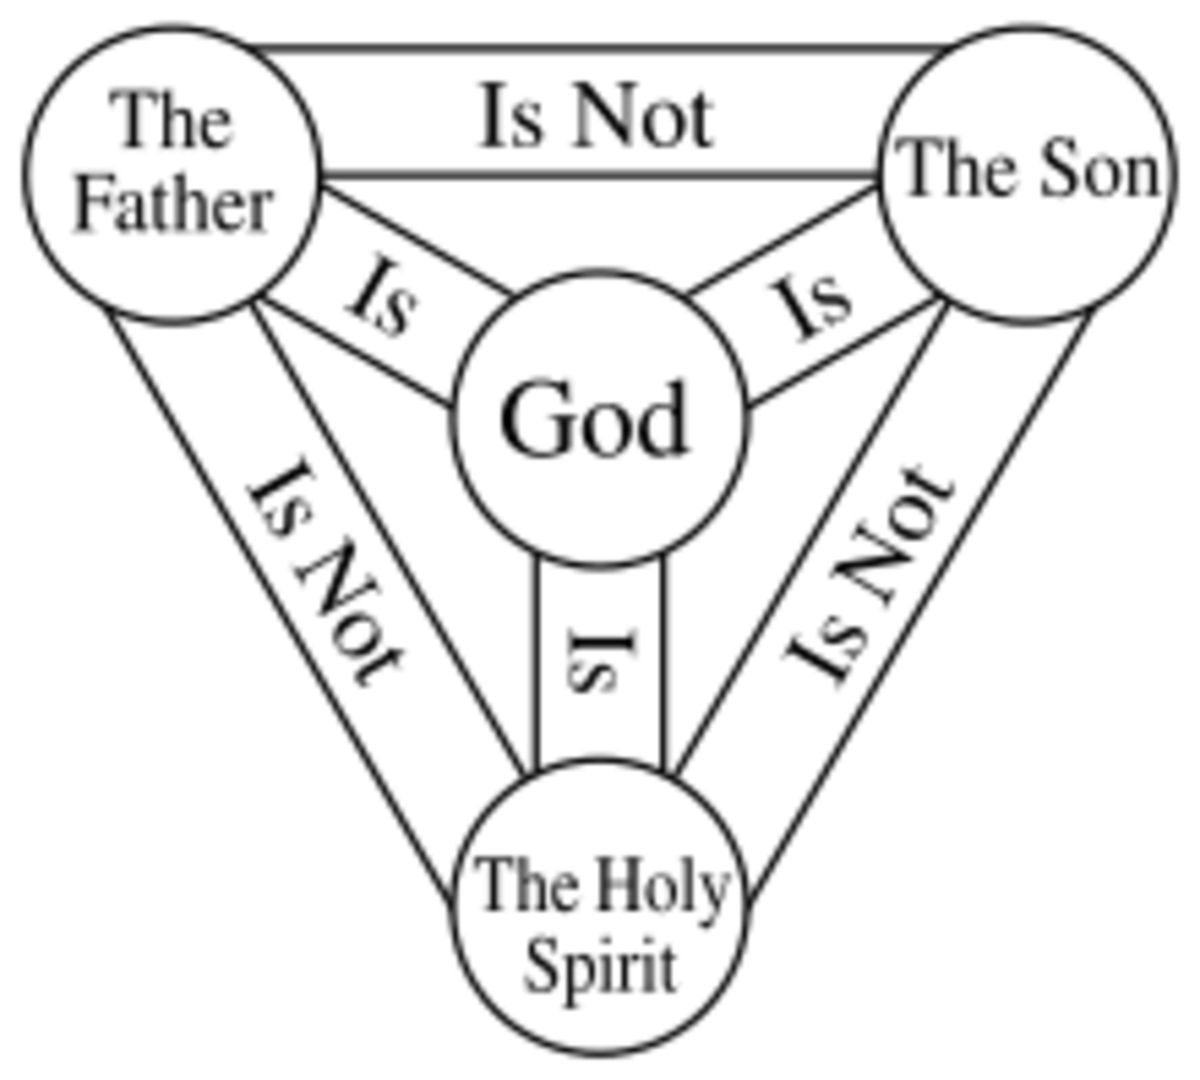 This diagram is a visual attempt to explain the doctrine of the Trinity. How does it reflect what is taught in the Bible? How does it fall short?